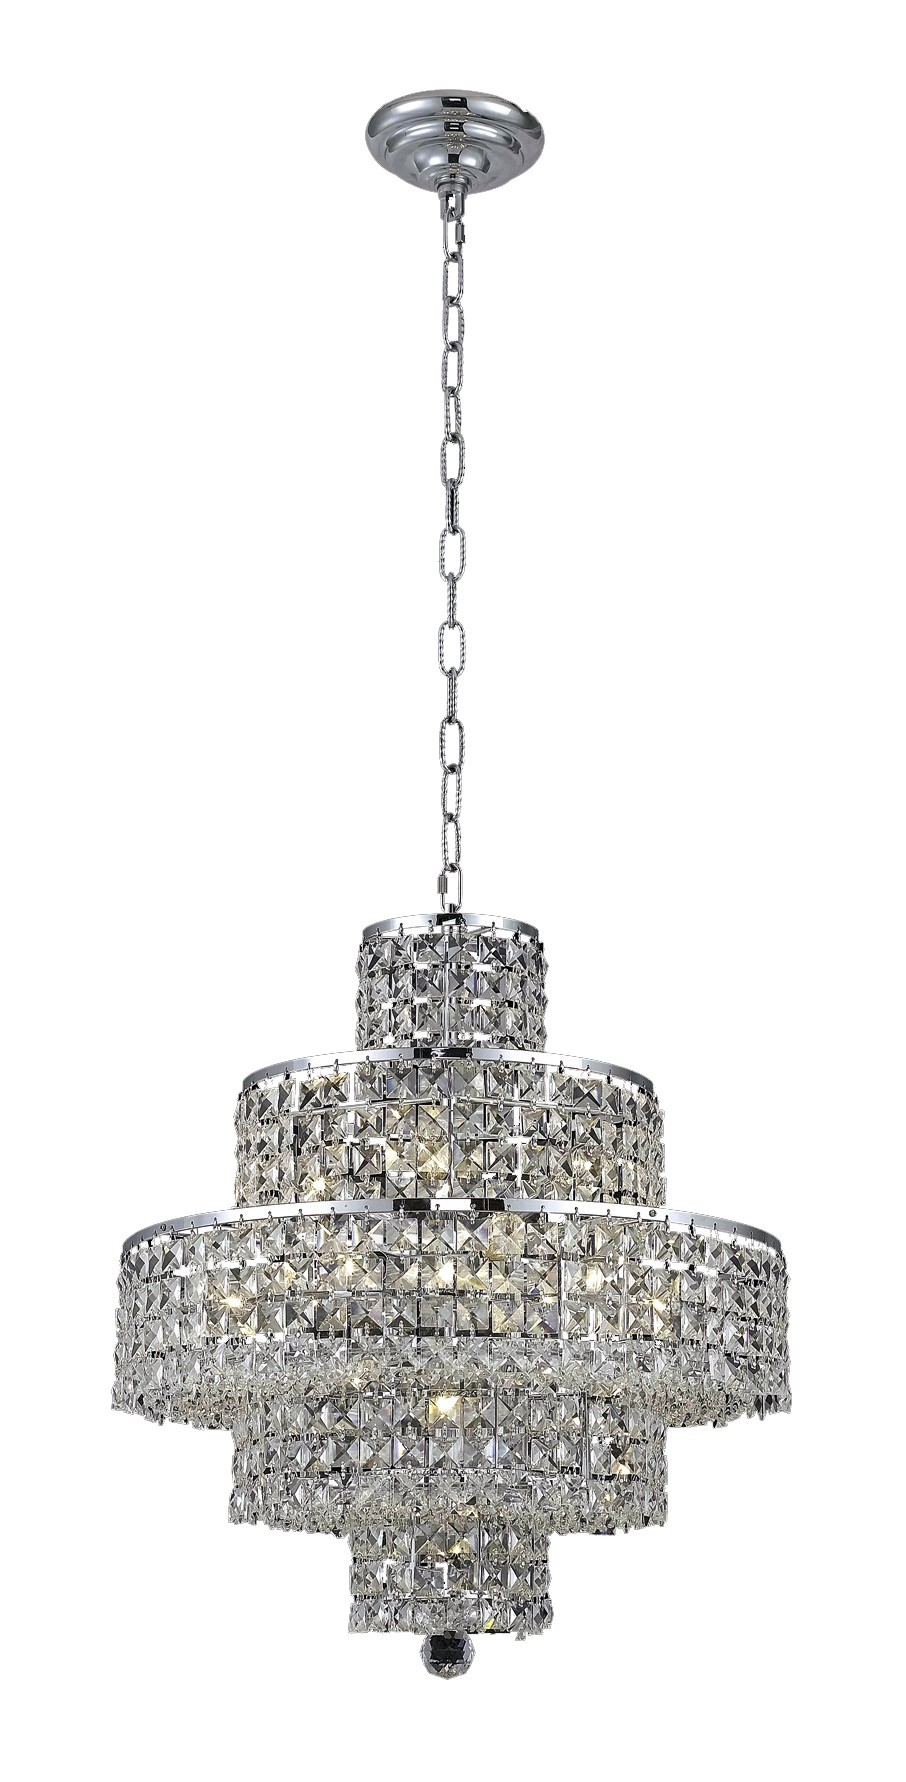 2039 Maxime Collection Chandelier D:20in H:21in Lt:13 Chrome Finish (Elegant Cut Crystals)